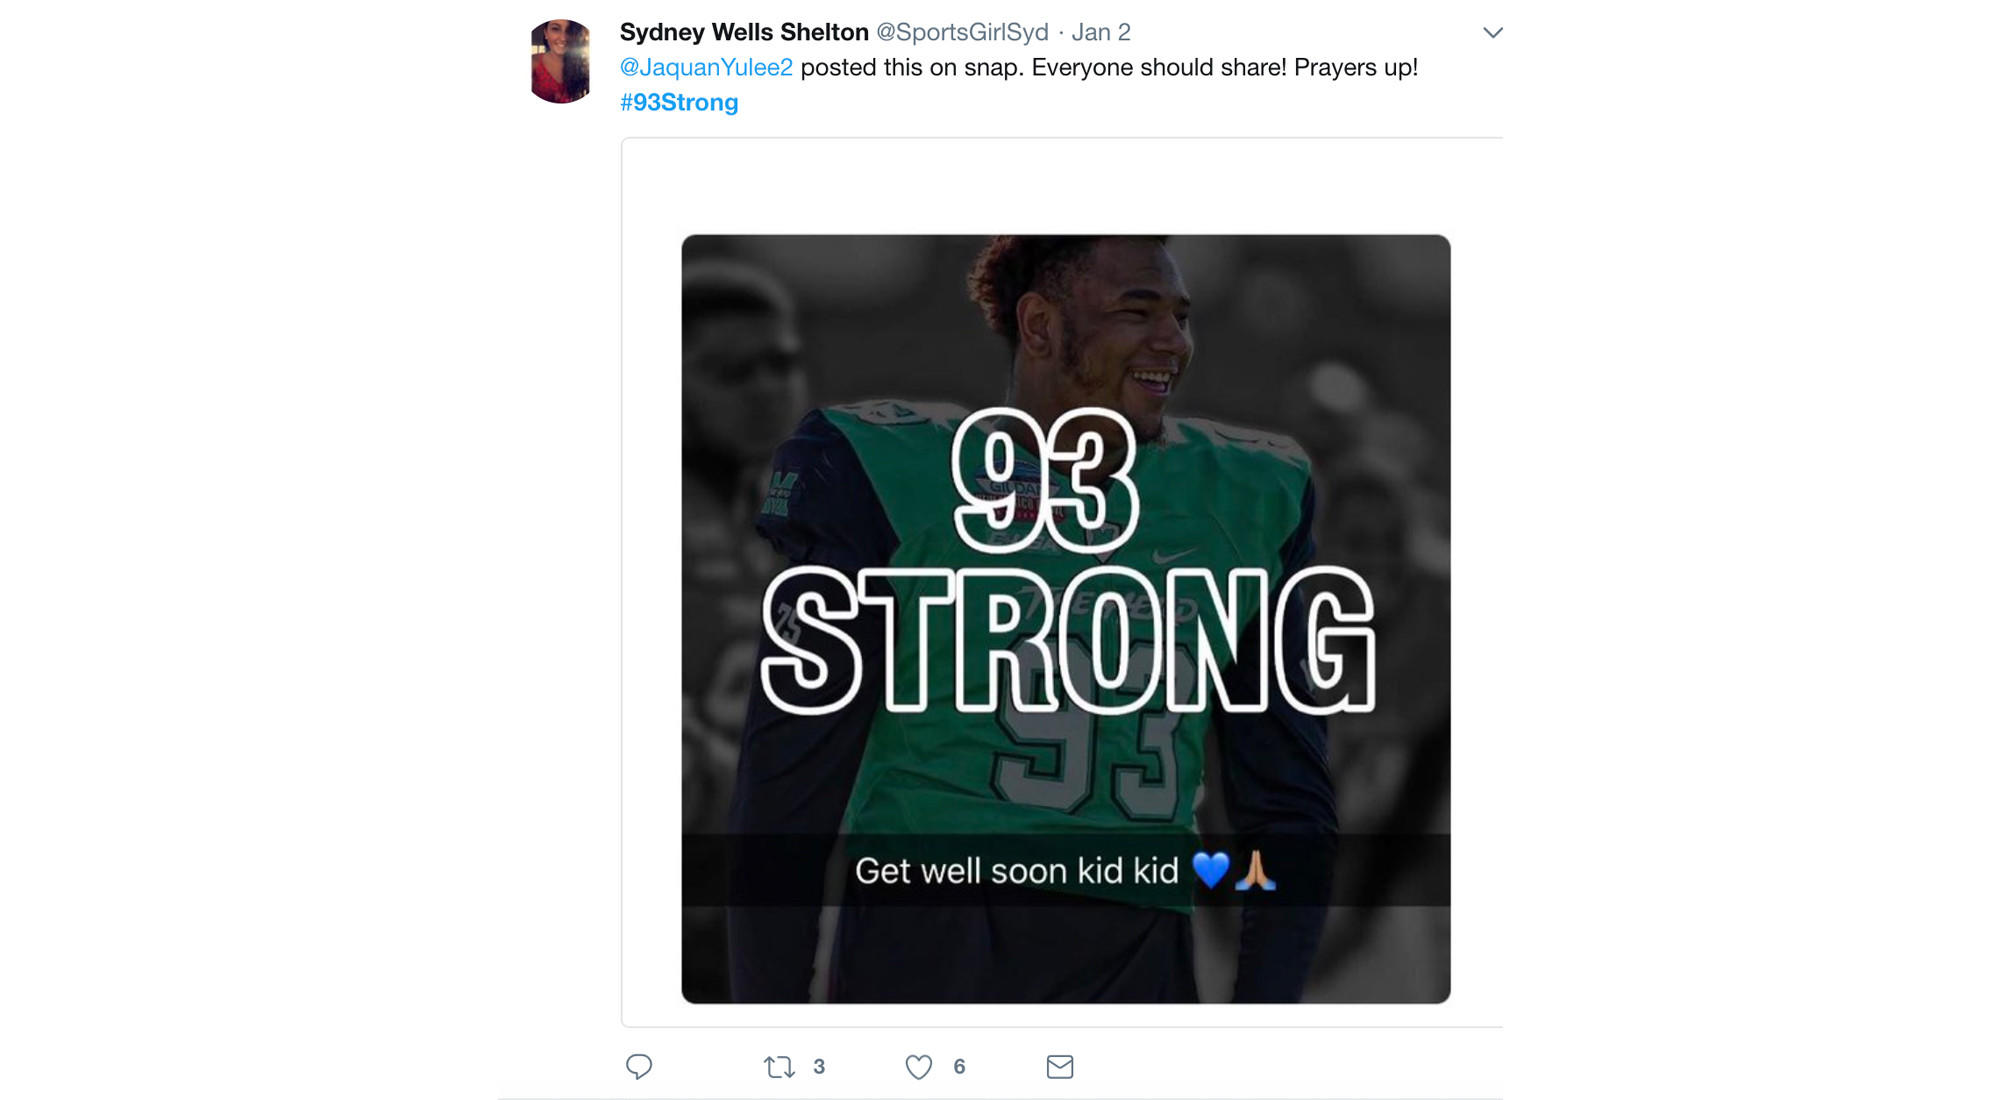 Start of the #93Strong hashtag